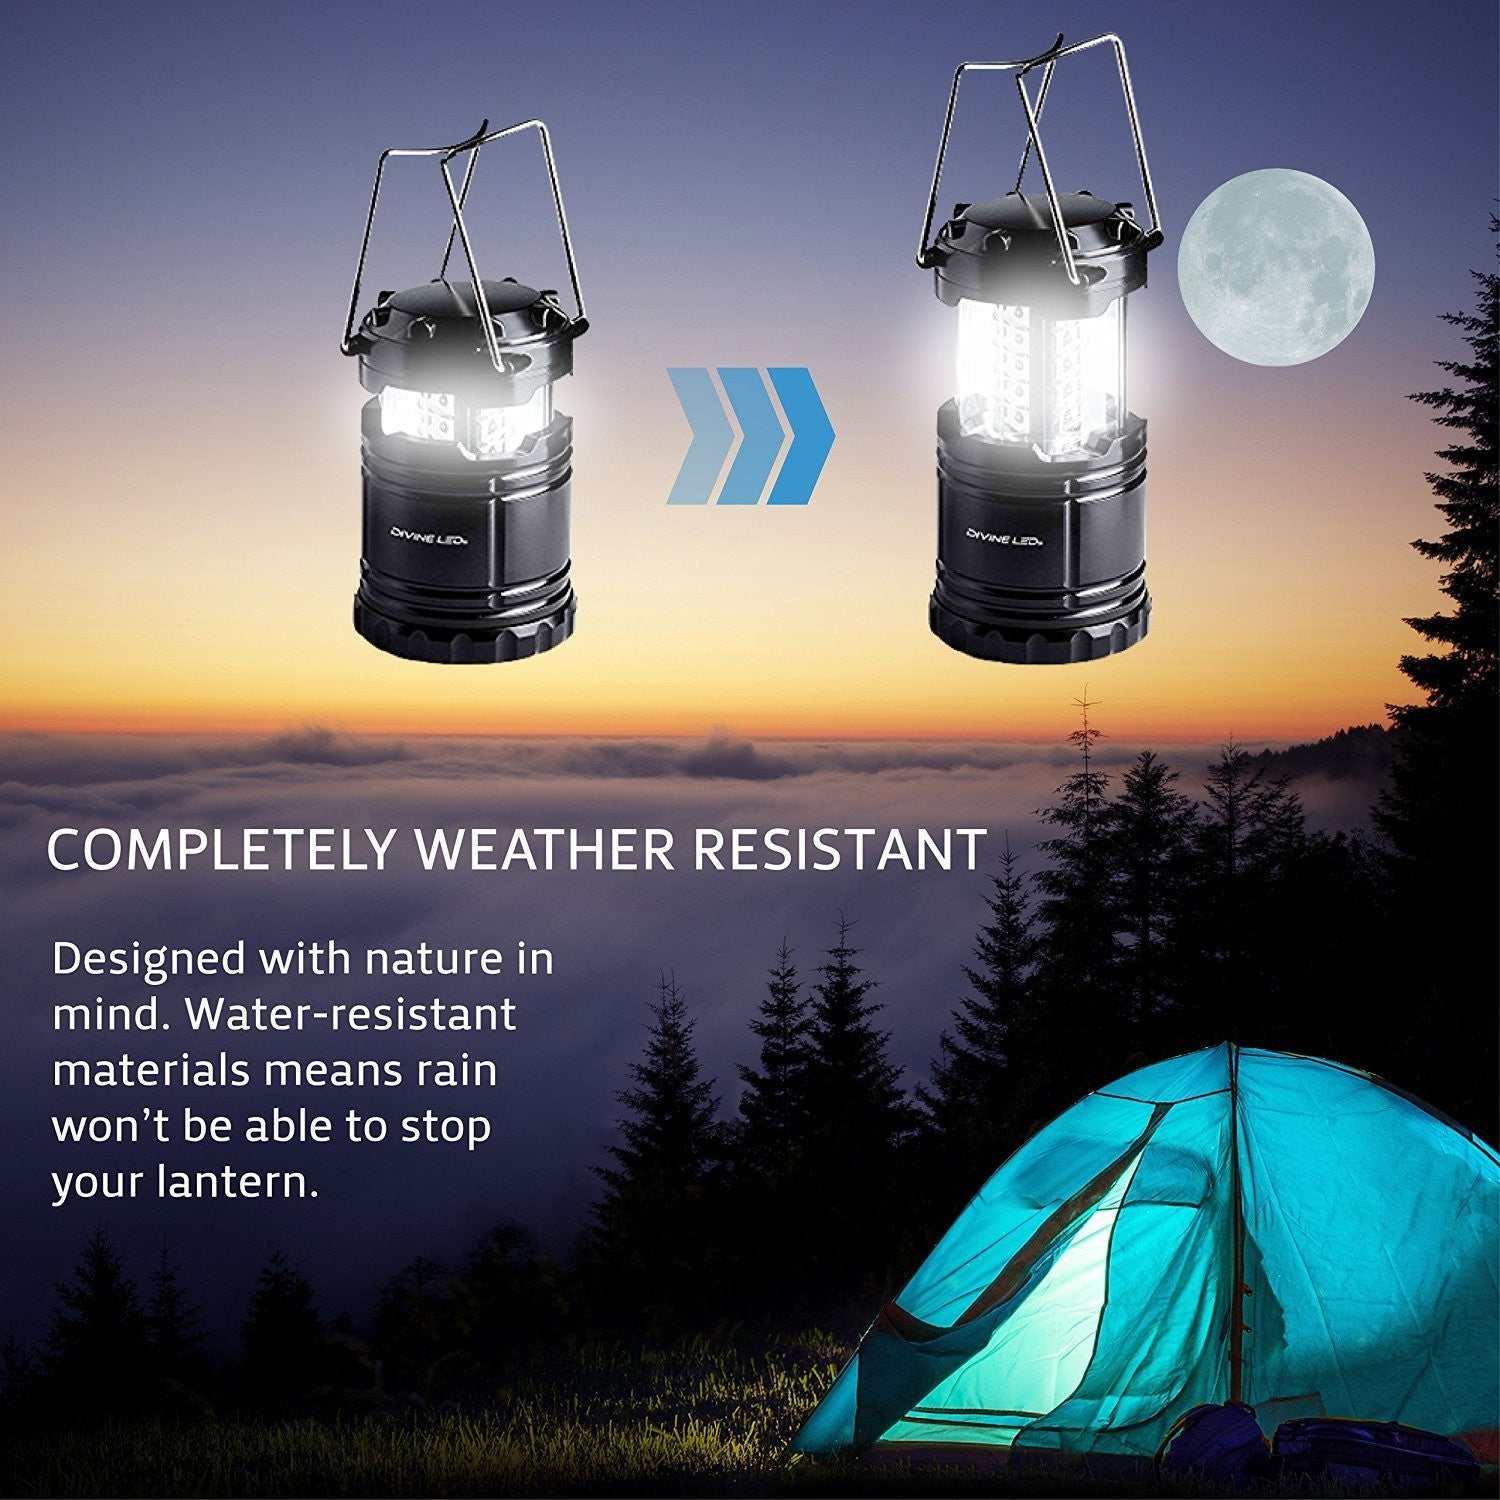 Divine LEDs Bright 2 Pack Portable Outdoor LED Camping Lantern, Black, Collapsible